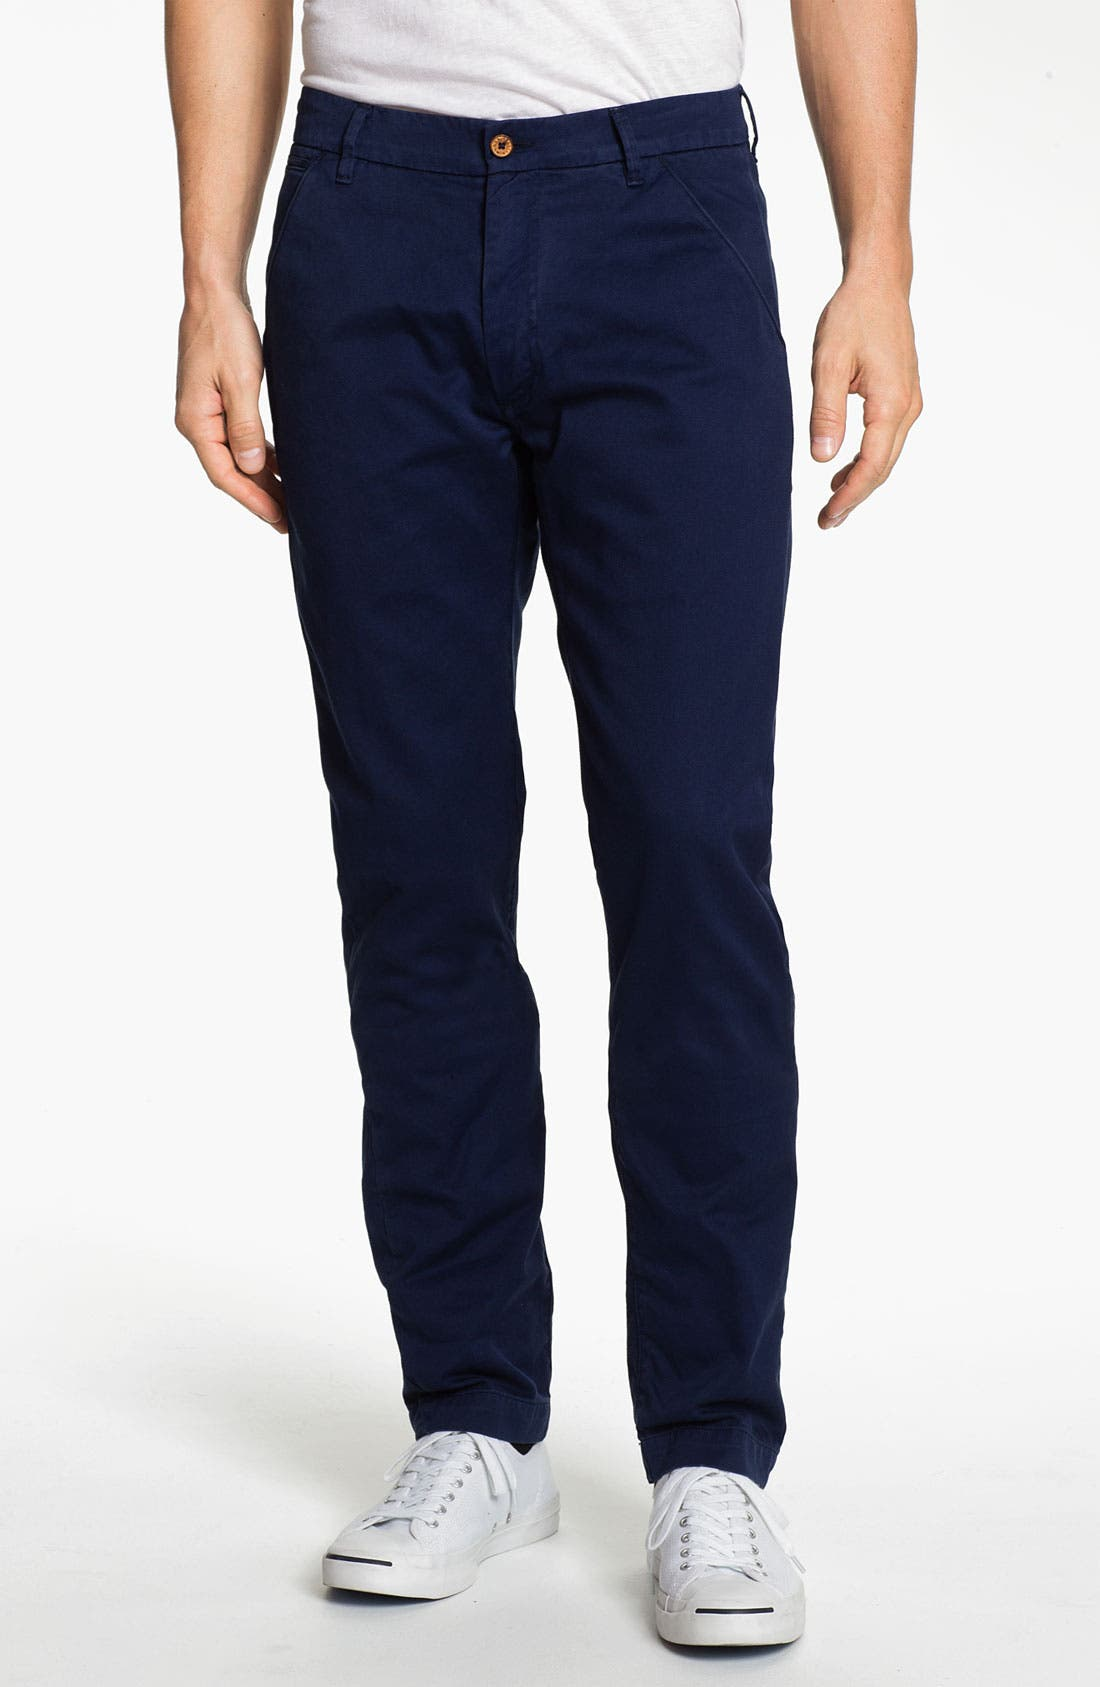 Alternate Image 1 Selected - Levi's® Made & Crafted™ 'Spoke' Cotton Chinos